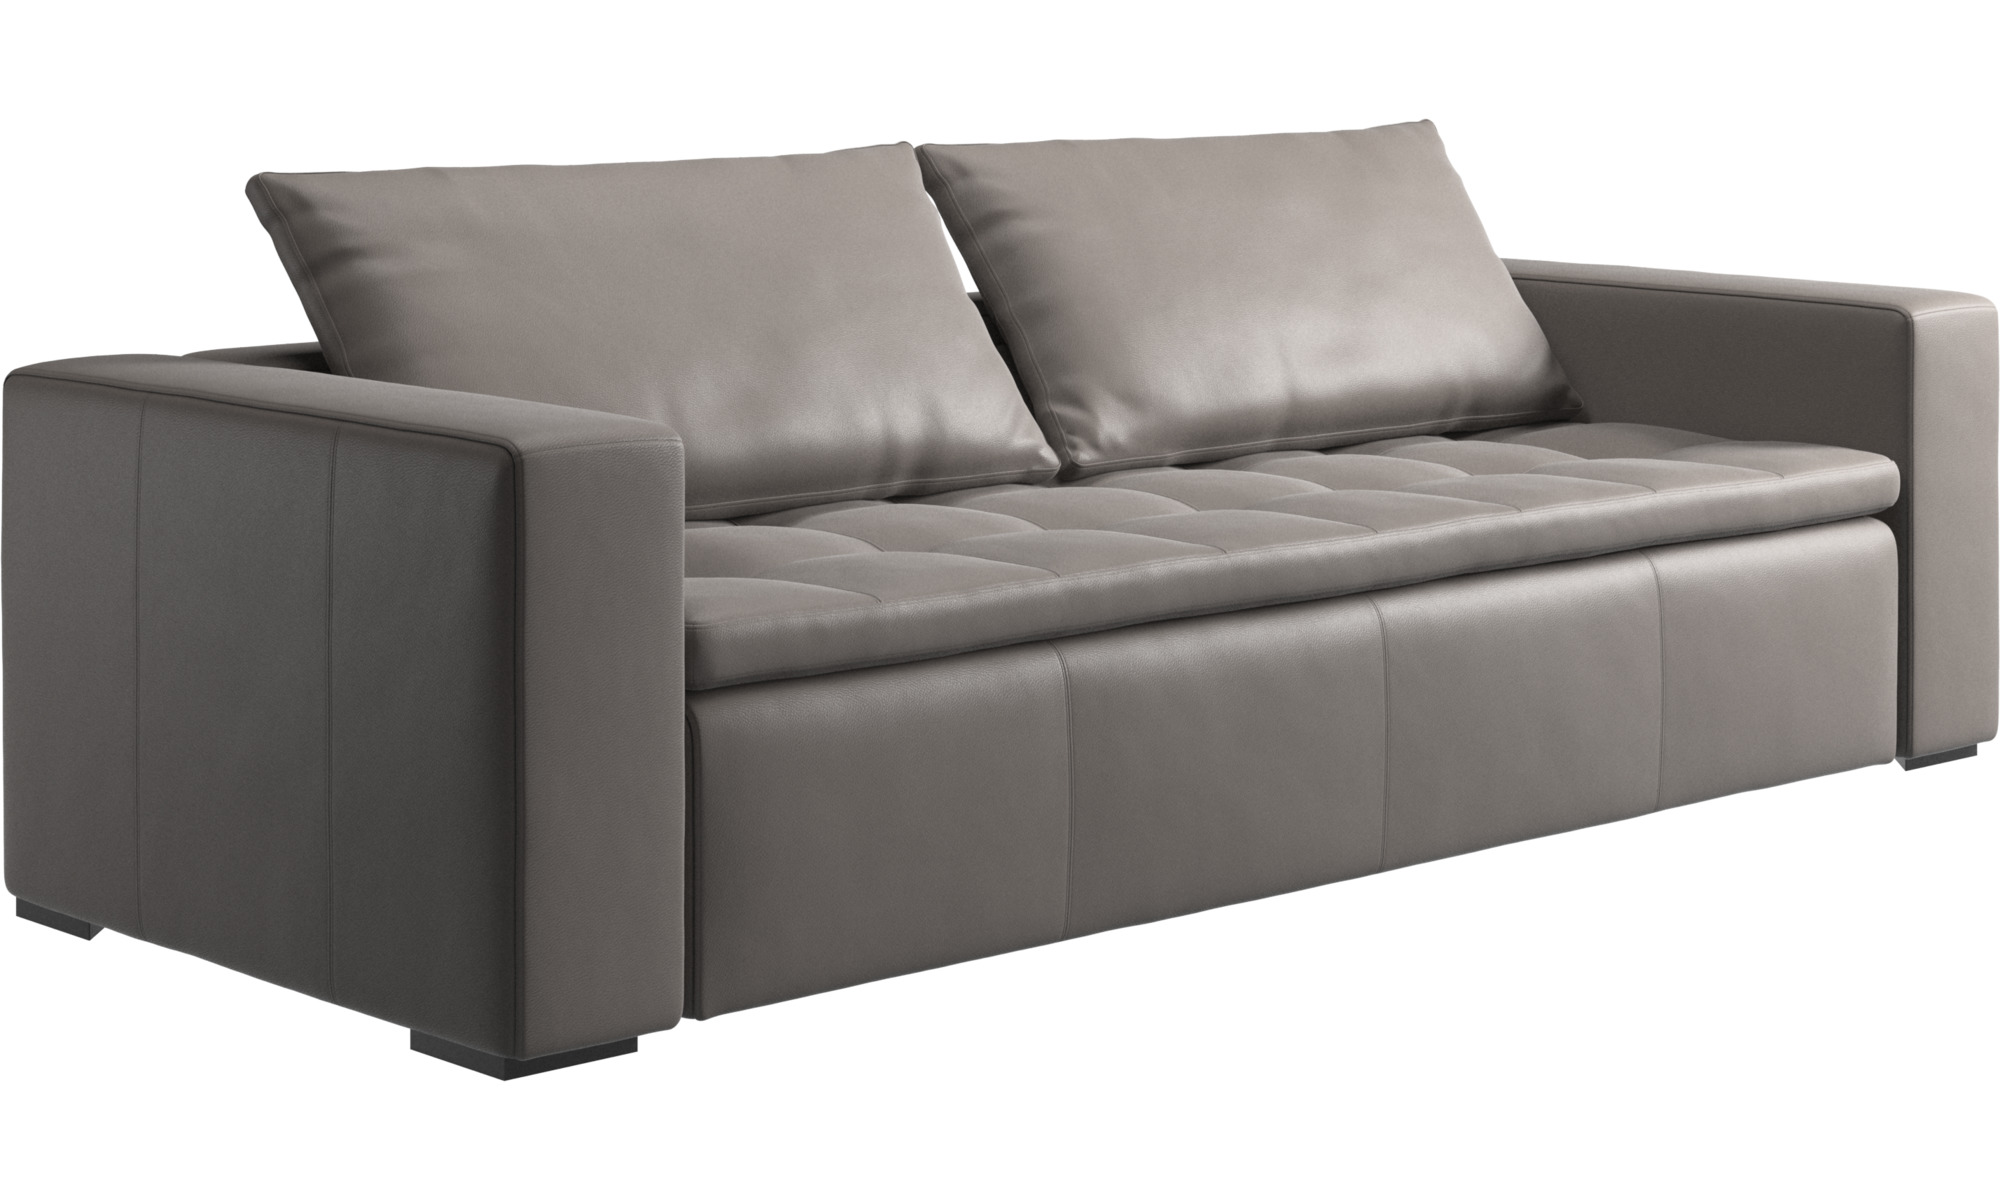 mezzo sofa 2 5 seater sofas mezzo sofa boconcept thesofa. Black Bedroom Furniture Sets. Home Design Ideas